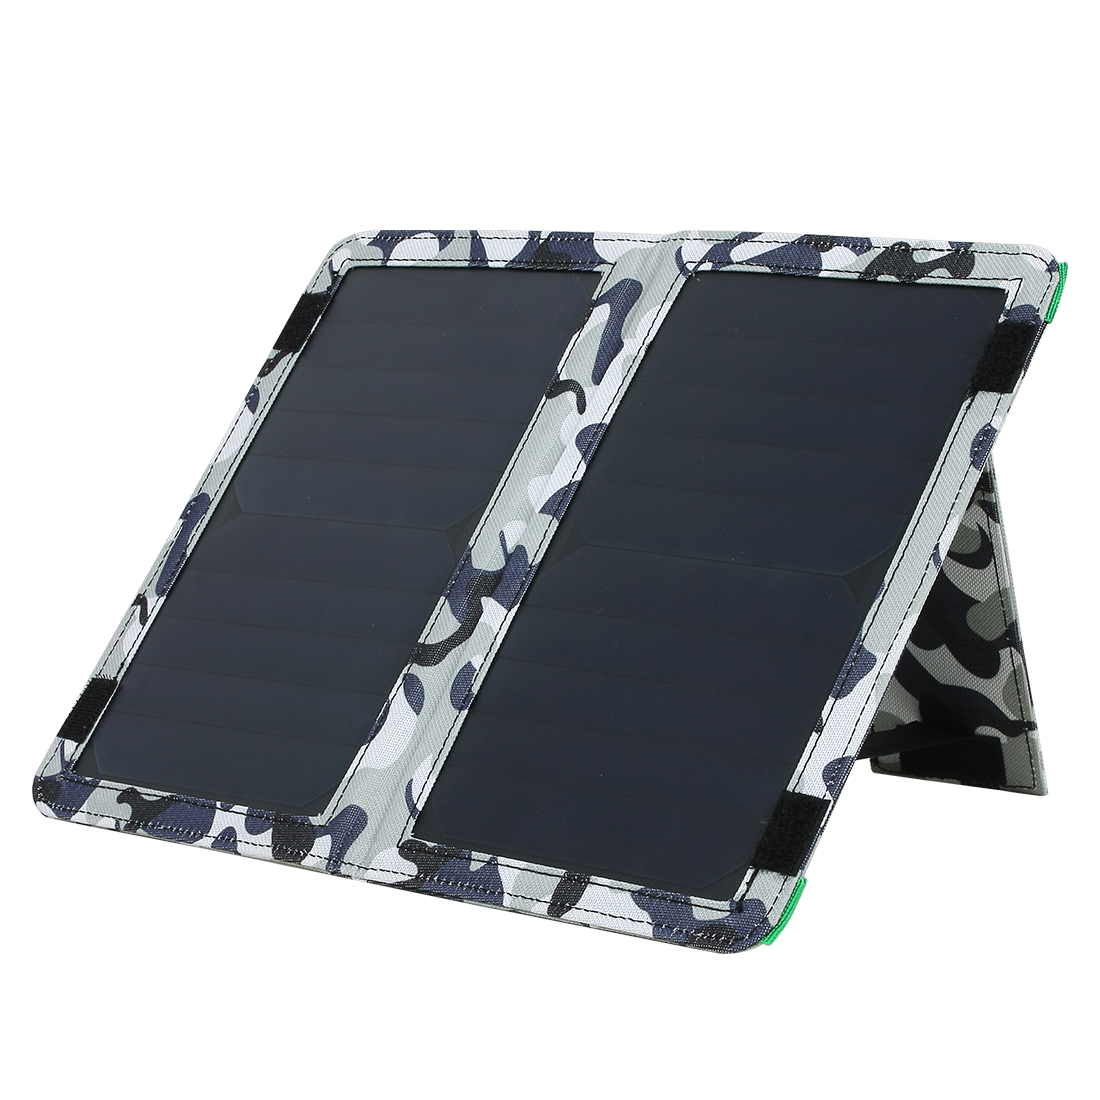 10W Single Ports USB Foldable Solar Panel Charger for Smart Phone Portable Pad More Camouflage